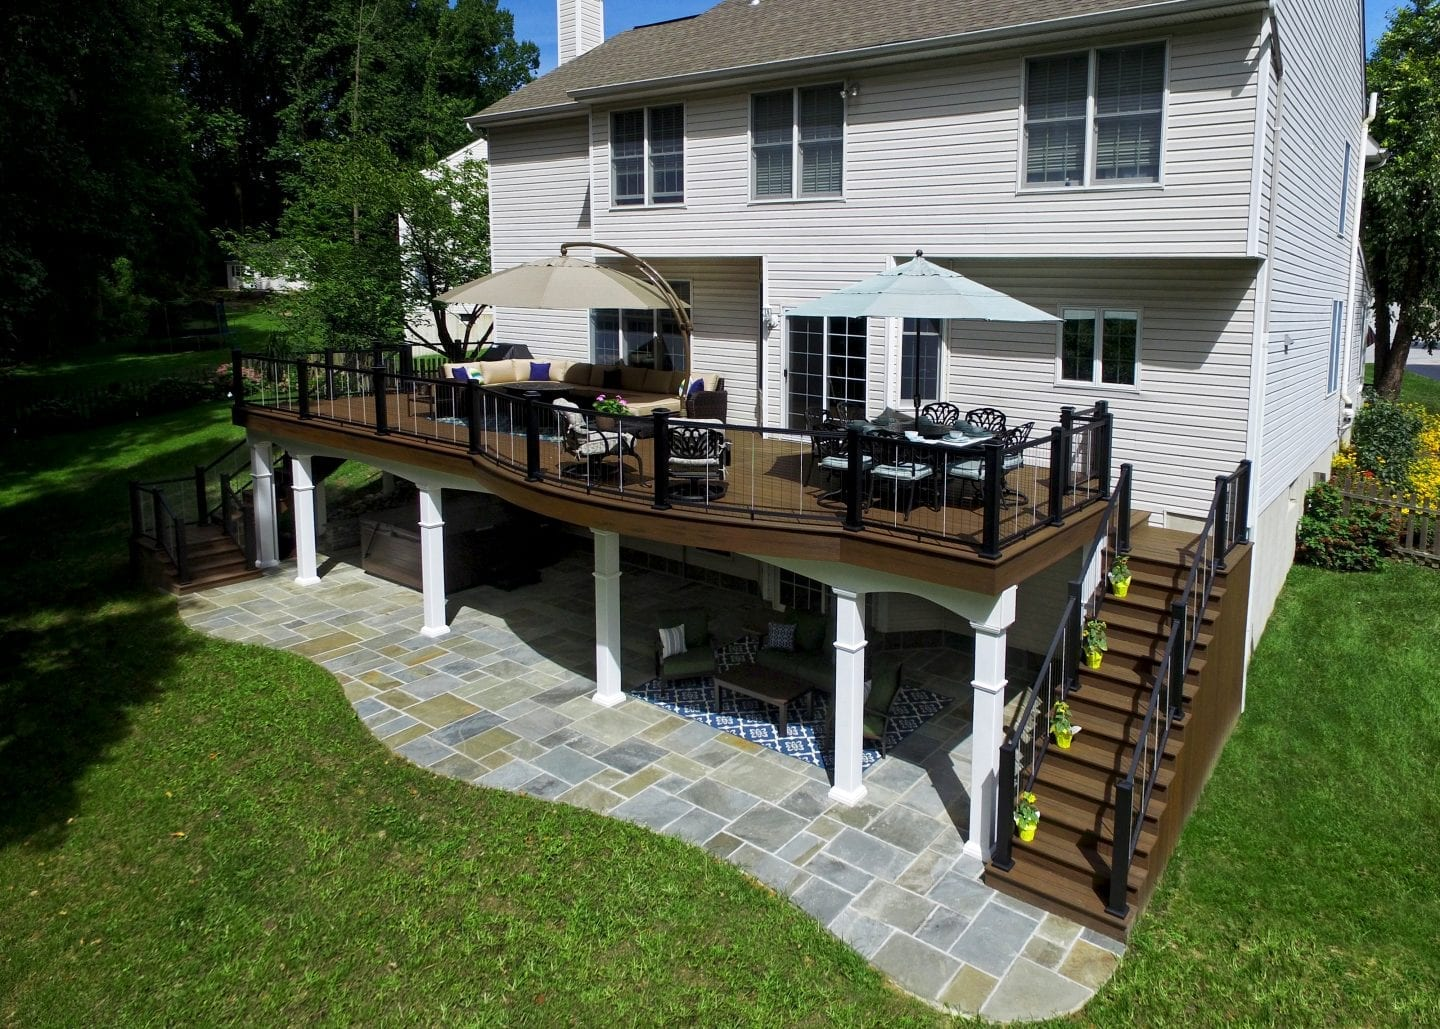 Backyard Patio Builders: Covered Patios | Chester ... on Patio With Deck Ideas id=86158